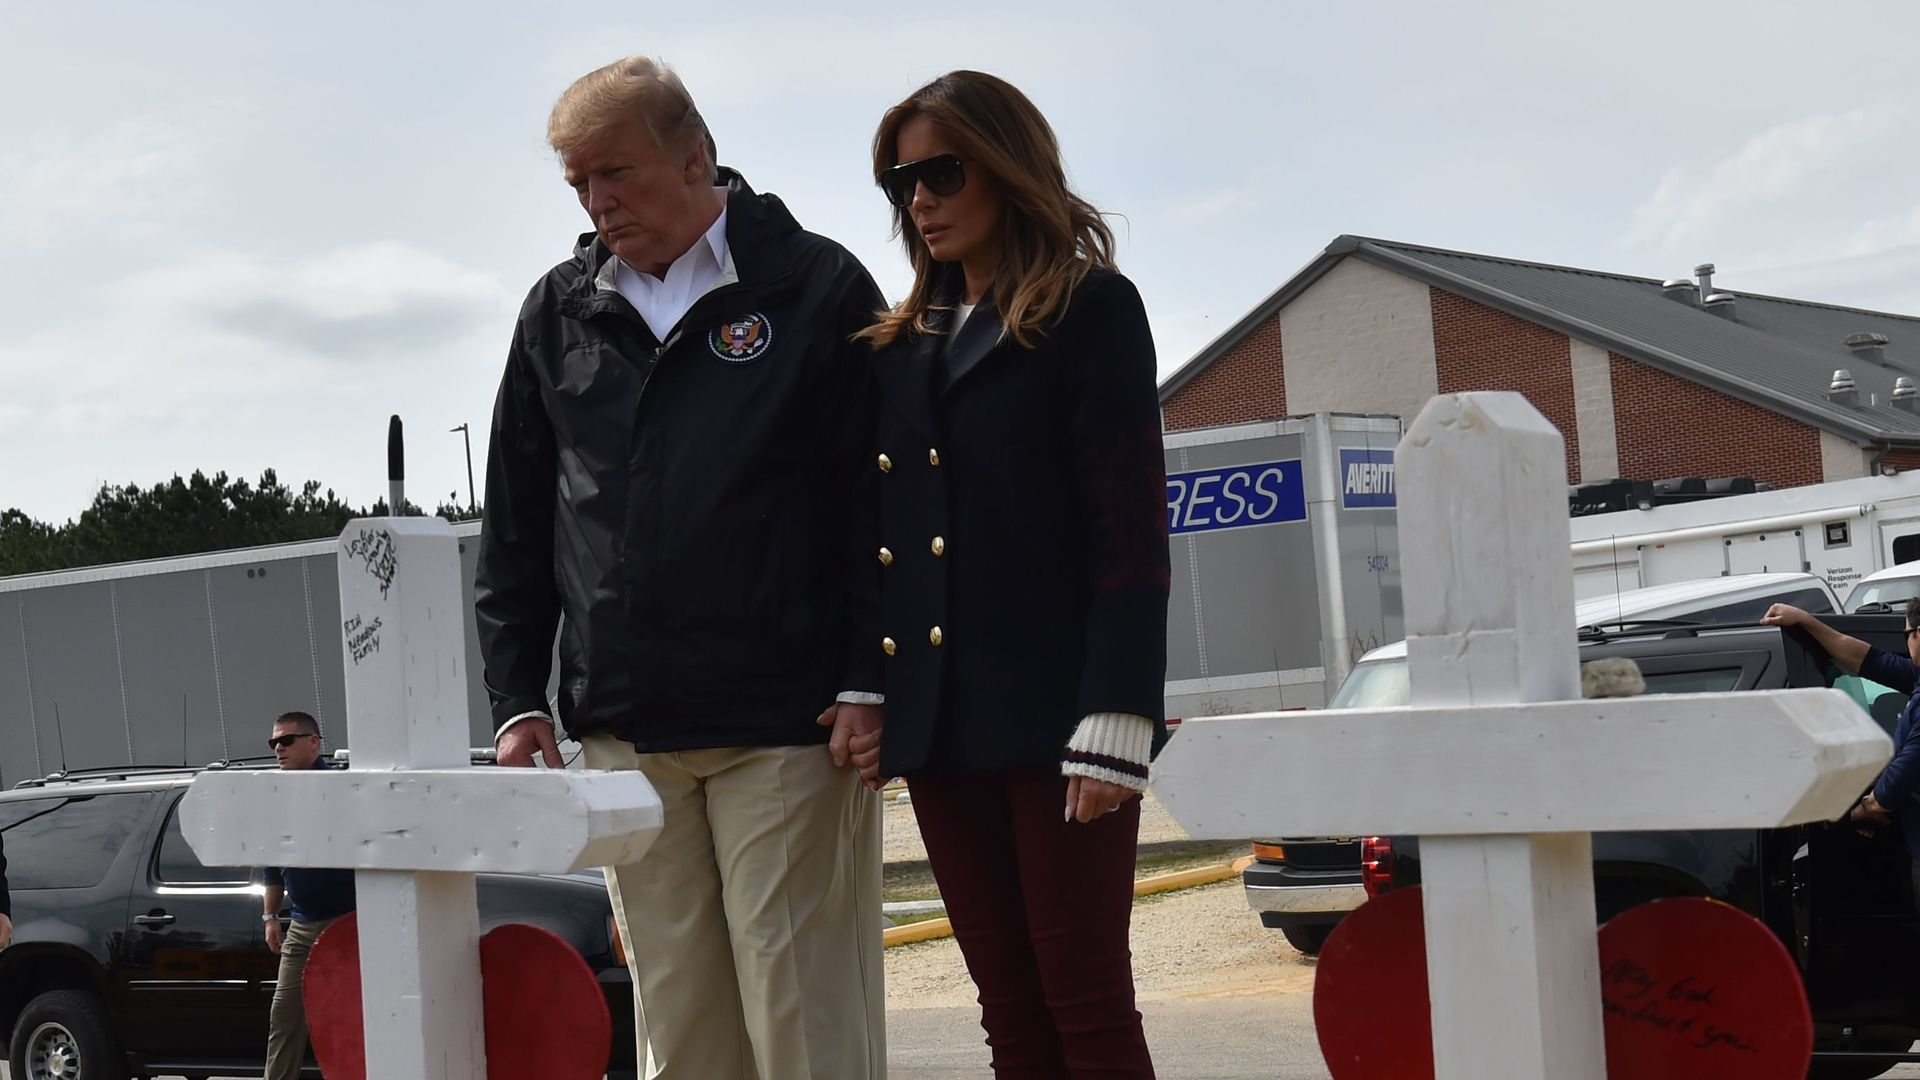 President Trump and Melania Trump view crosses honoring 23 people killed in an Alabama storm.